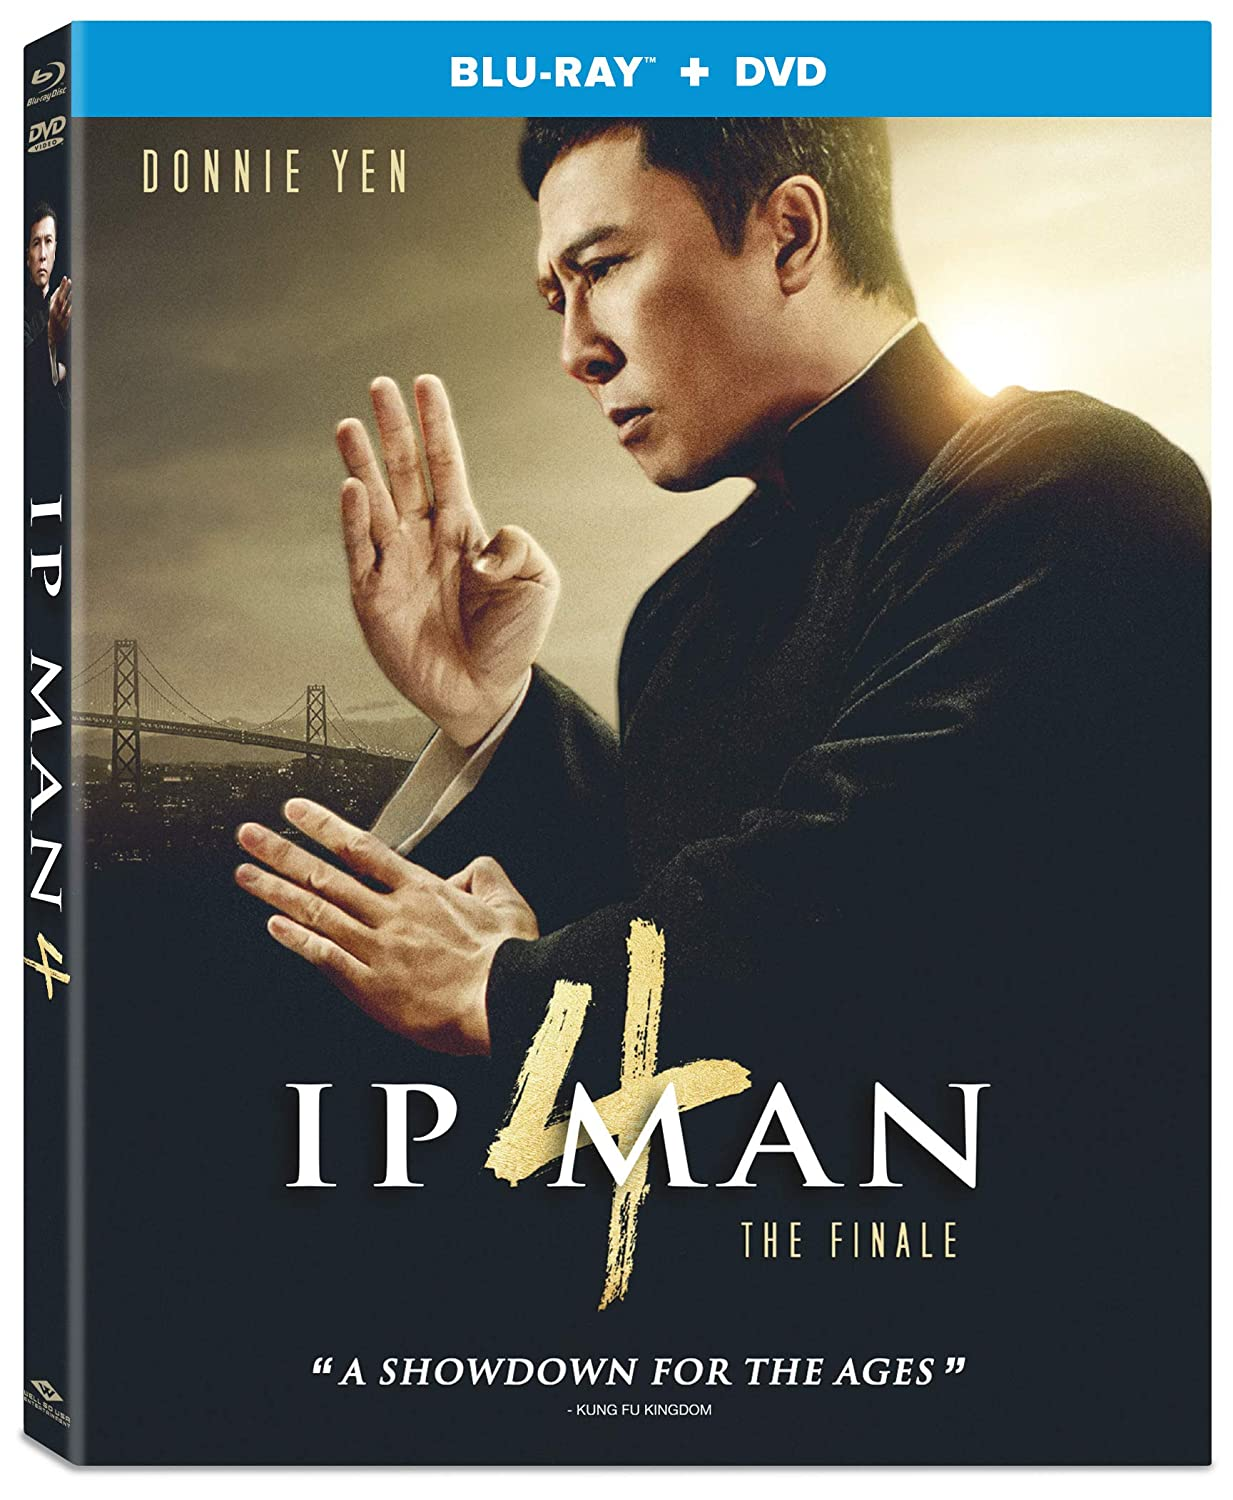 Amazon Com Ip Man 4 The Finale Blu Ray Dvd Donnie Yen Scott Adkins Wu Yue Wilson Yip Movies Tv